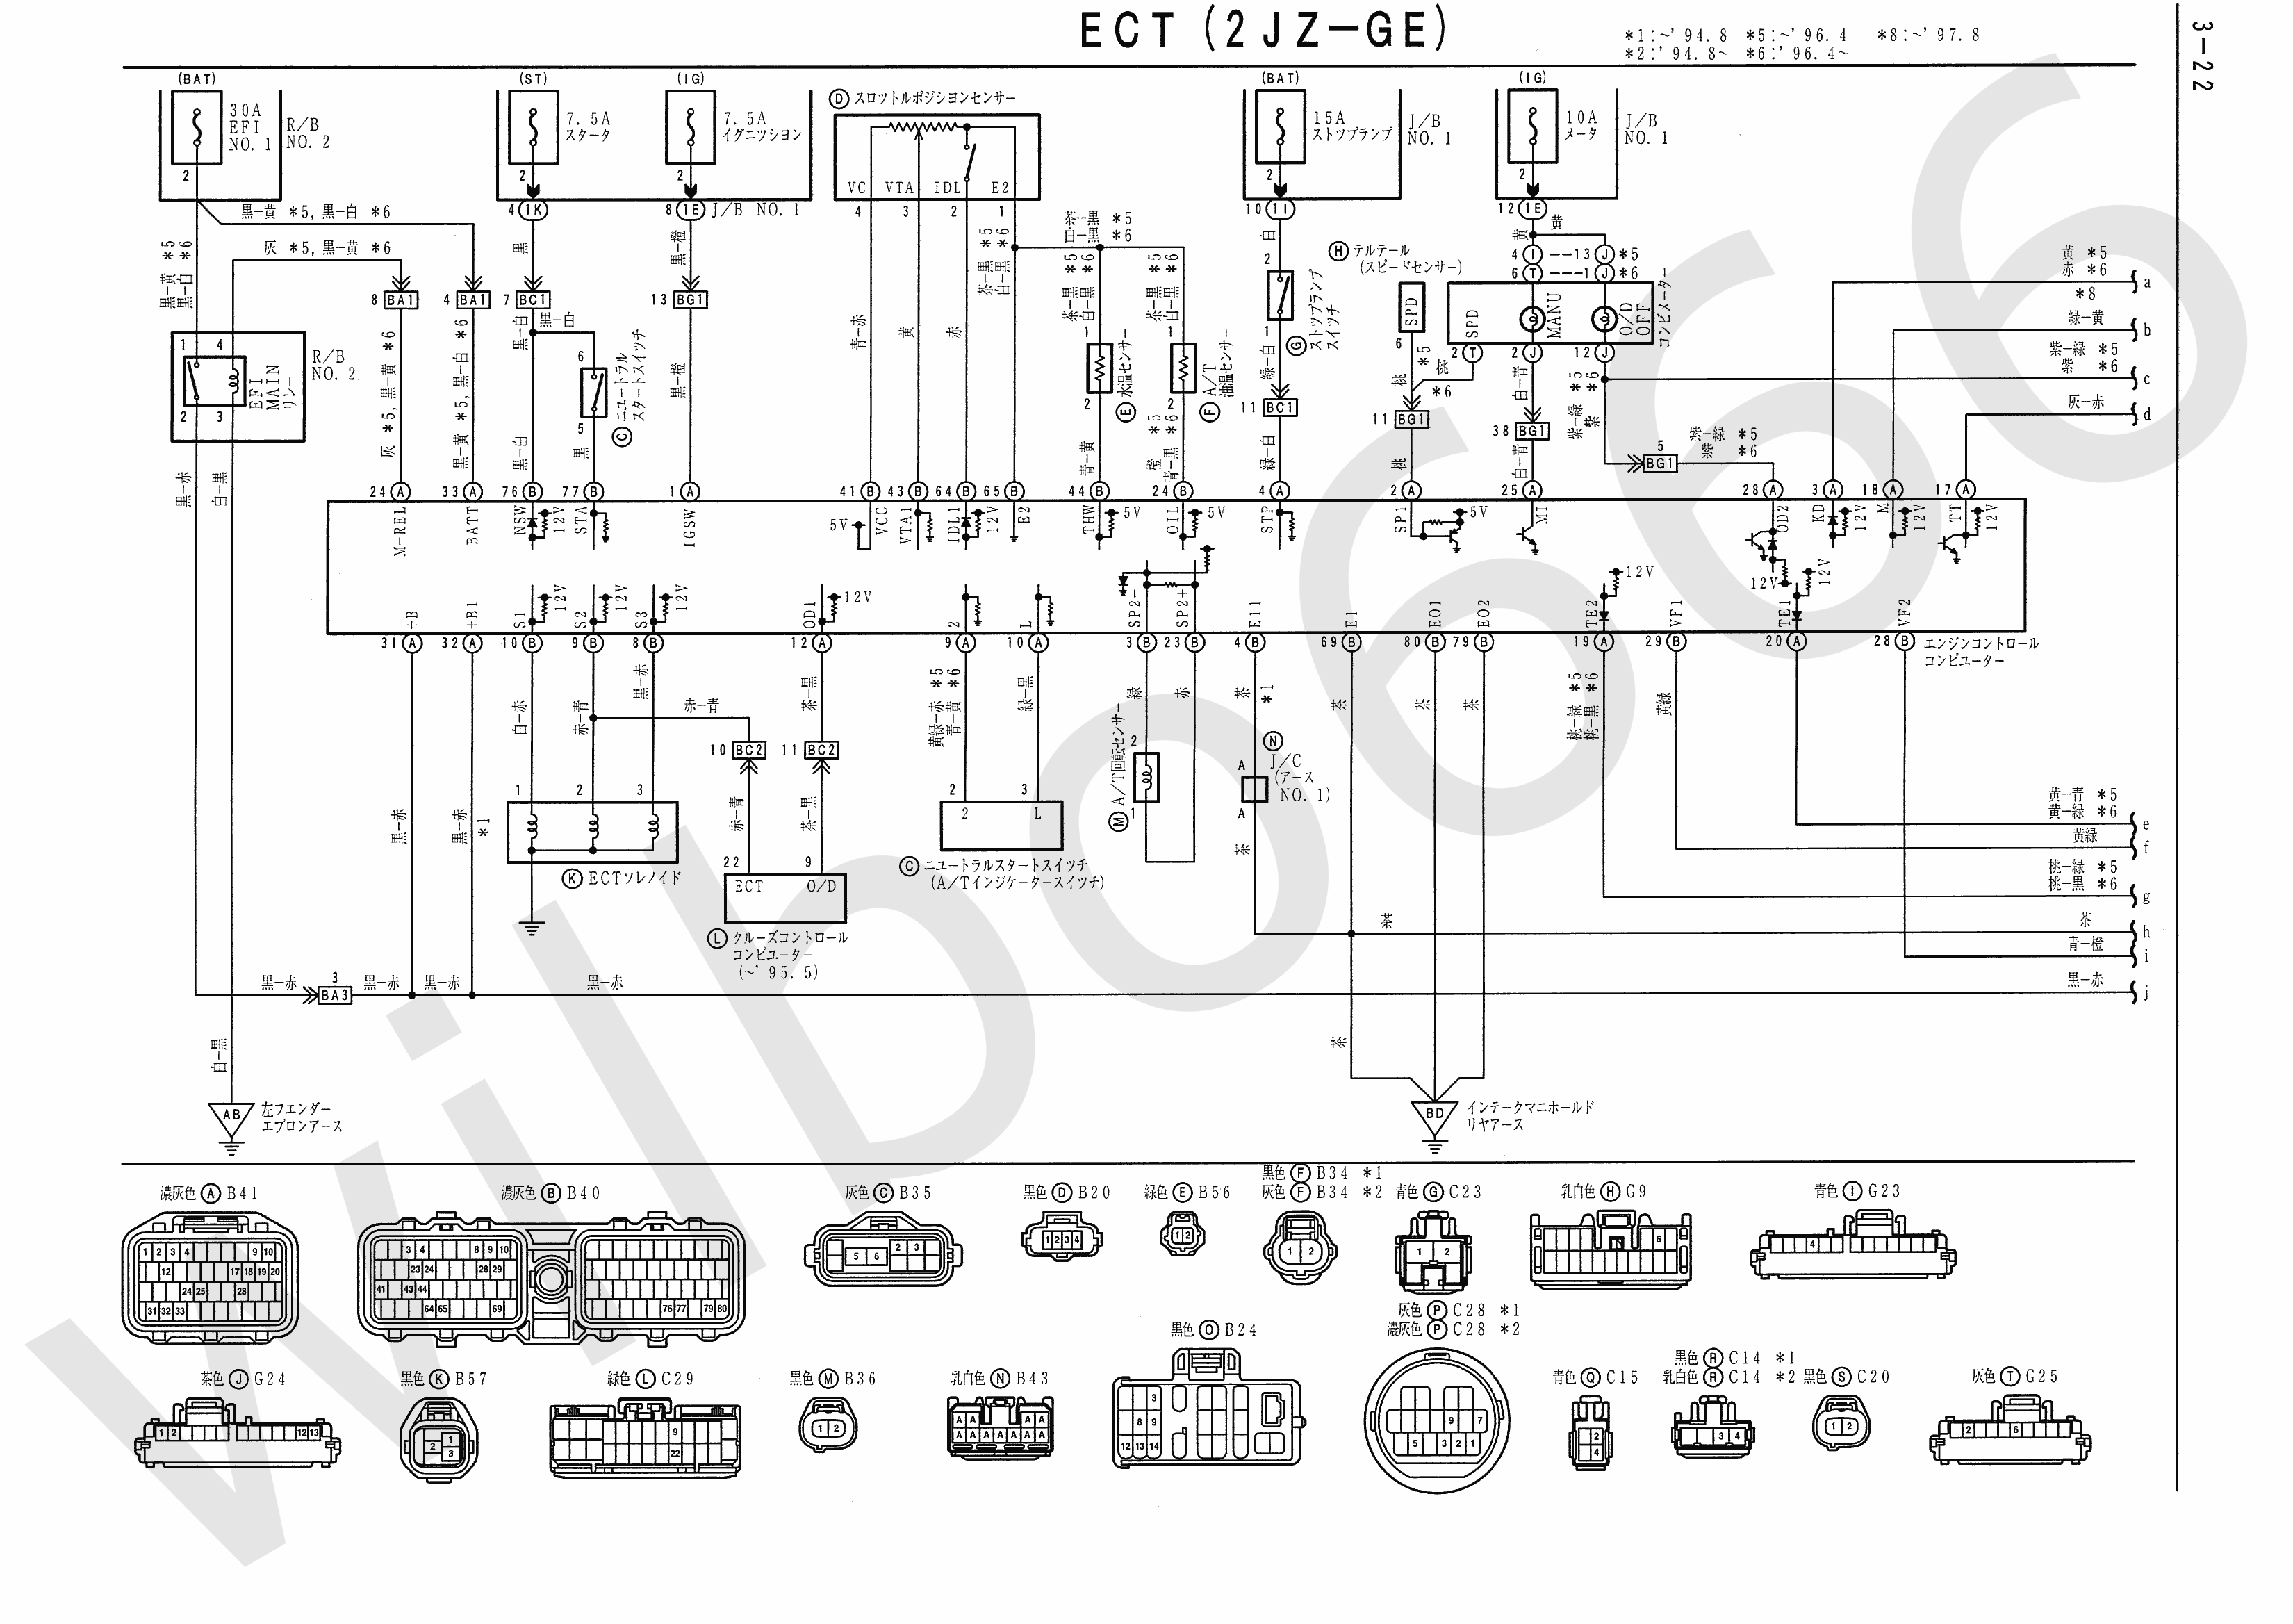 JZA80 Electrical Wiring Diagram 6742505 3 22?ssl\\\\\\\\\\\\\\\\\\\\\\\\\\=1 100 [ 100 wiring diagram 3 wire ] hammond schematics here and  at gsmportal.co